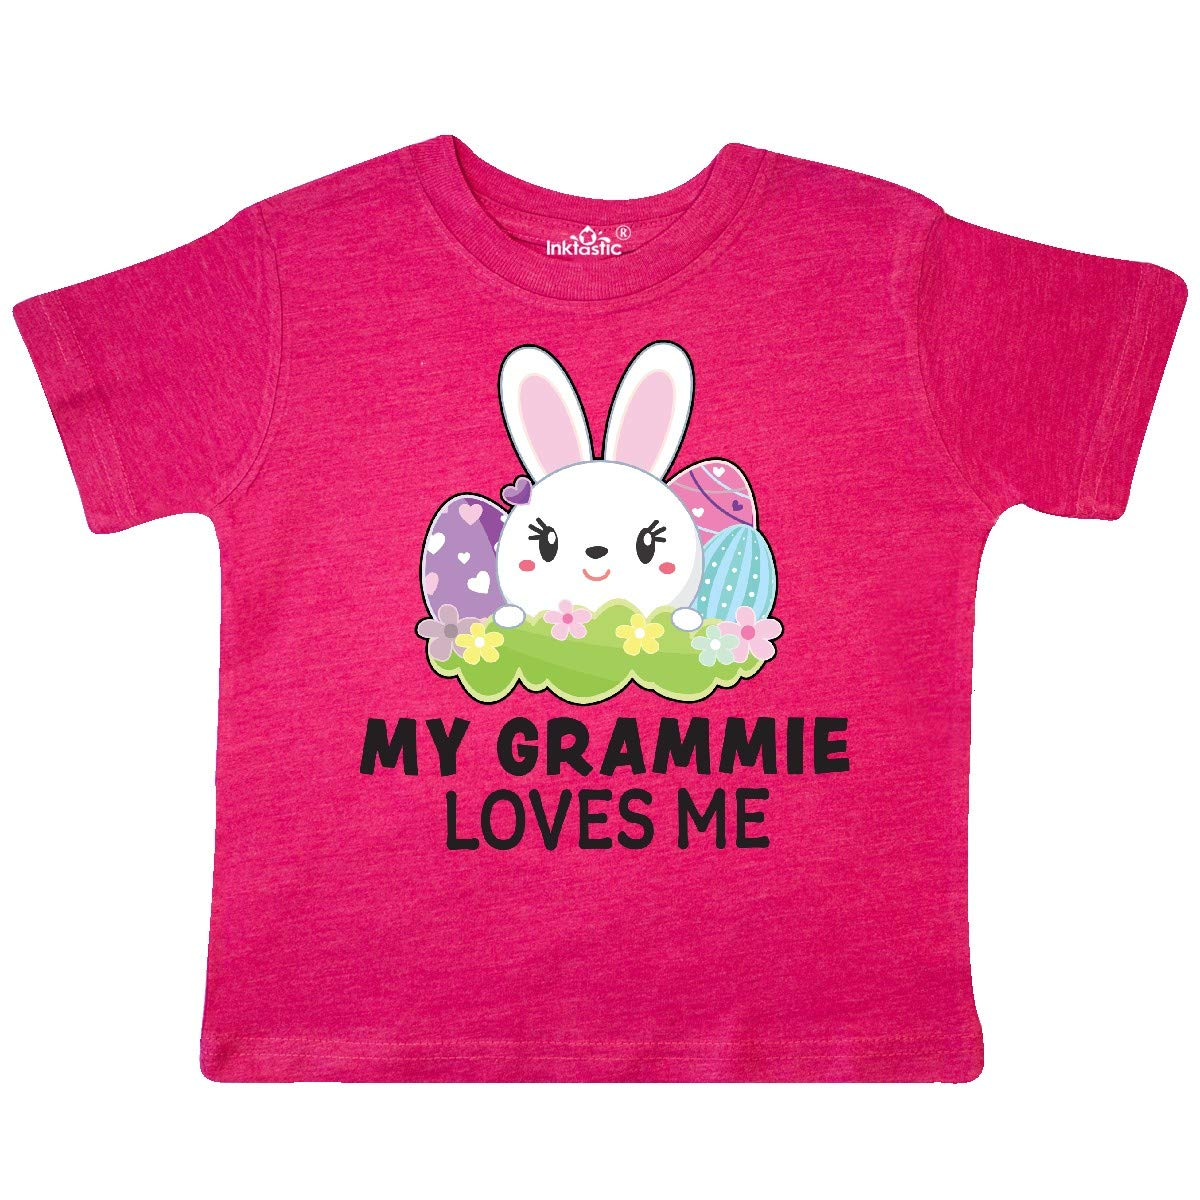 inktastic My Grammie Loves Me with Bunny and Easter Eggs Toddler T-Shirt